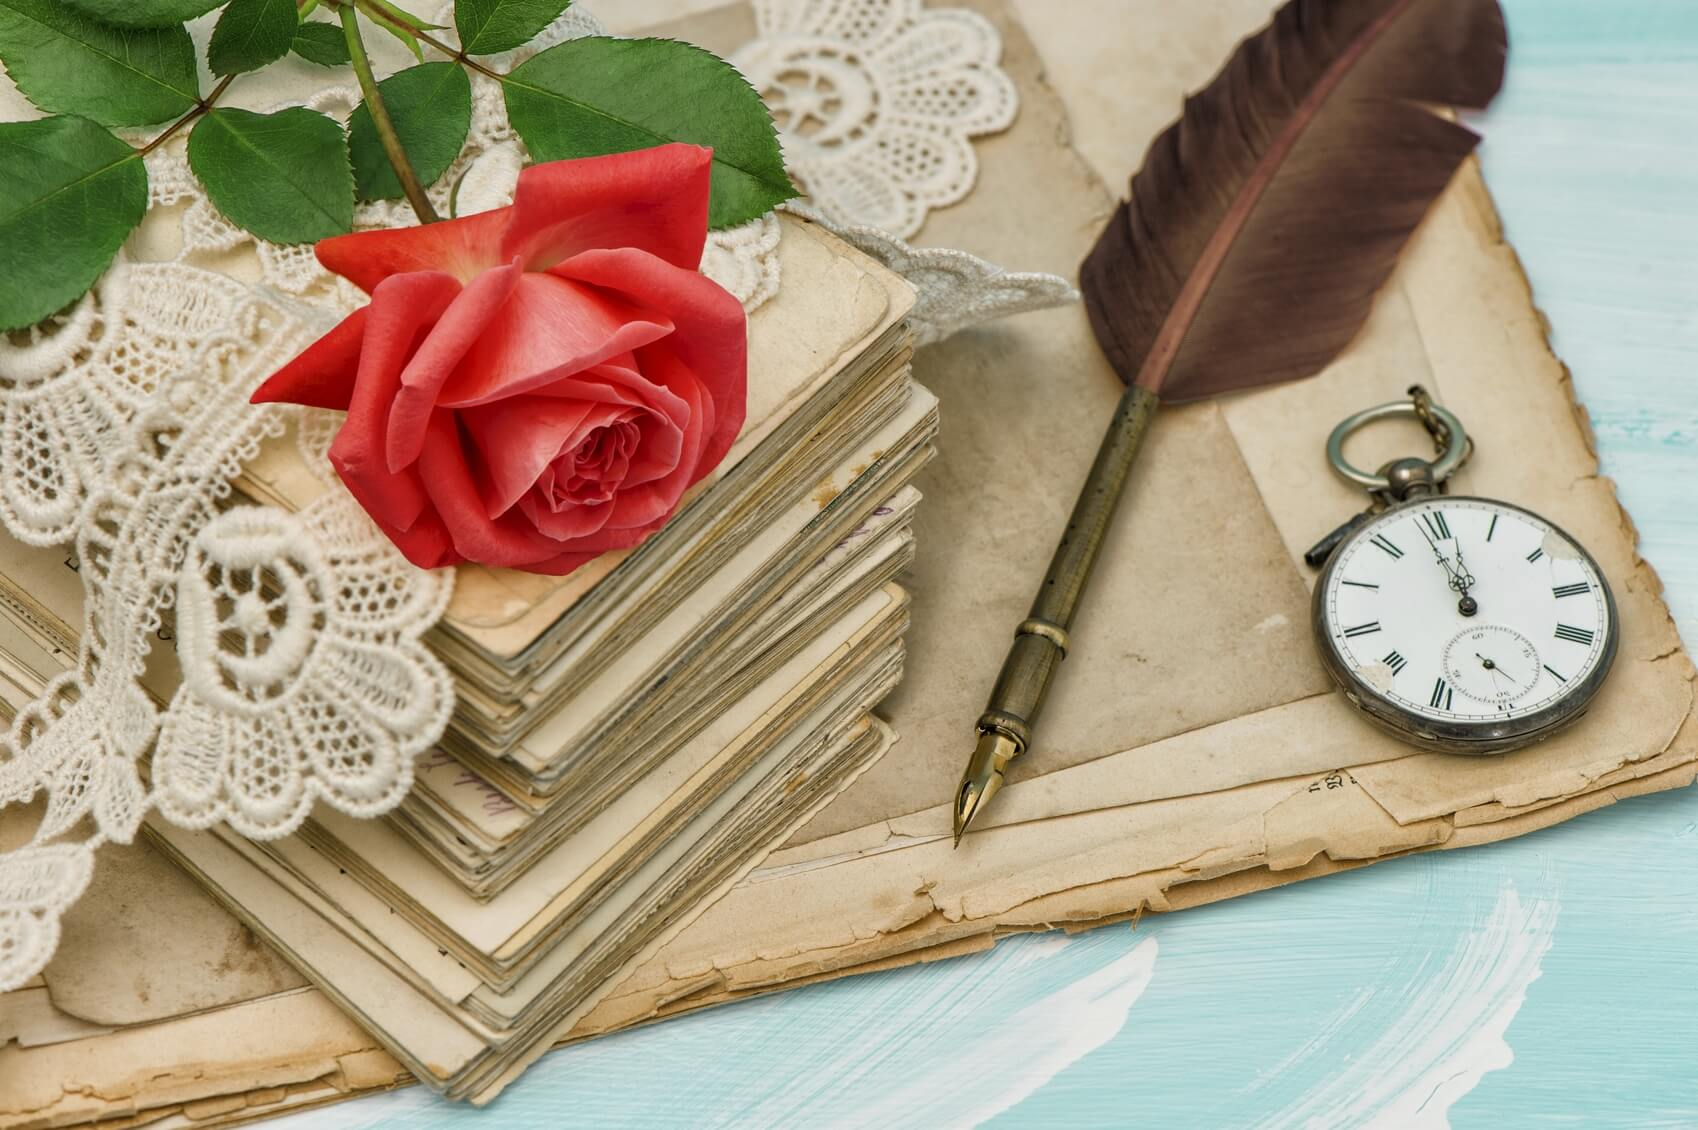 Old-love-letters-lace-and-red-rose-flower-000087174287_Medium.jpg.jpeg